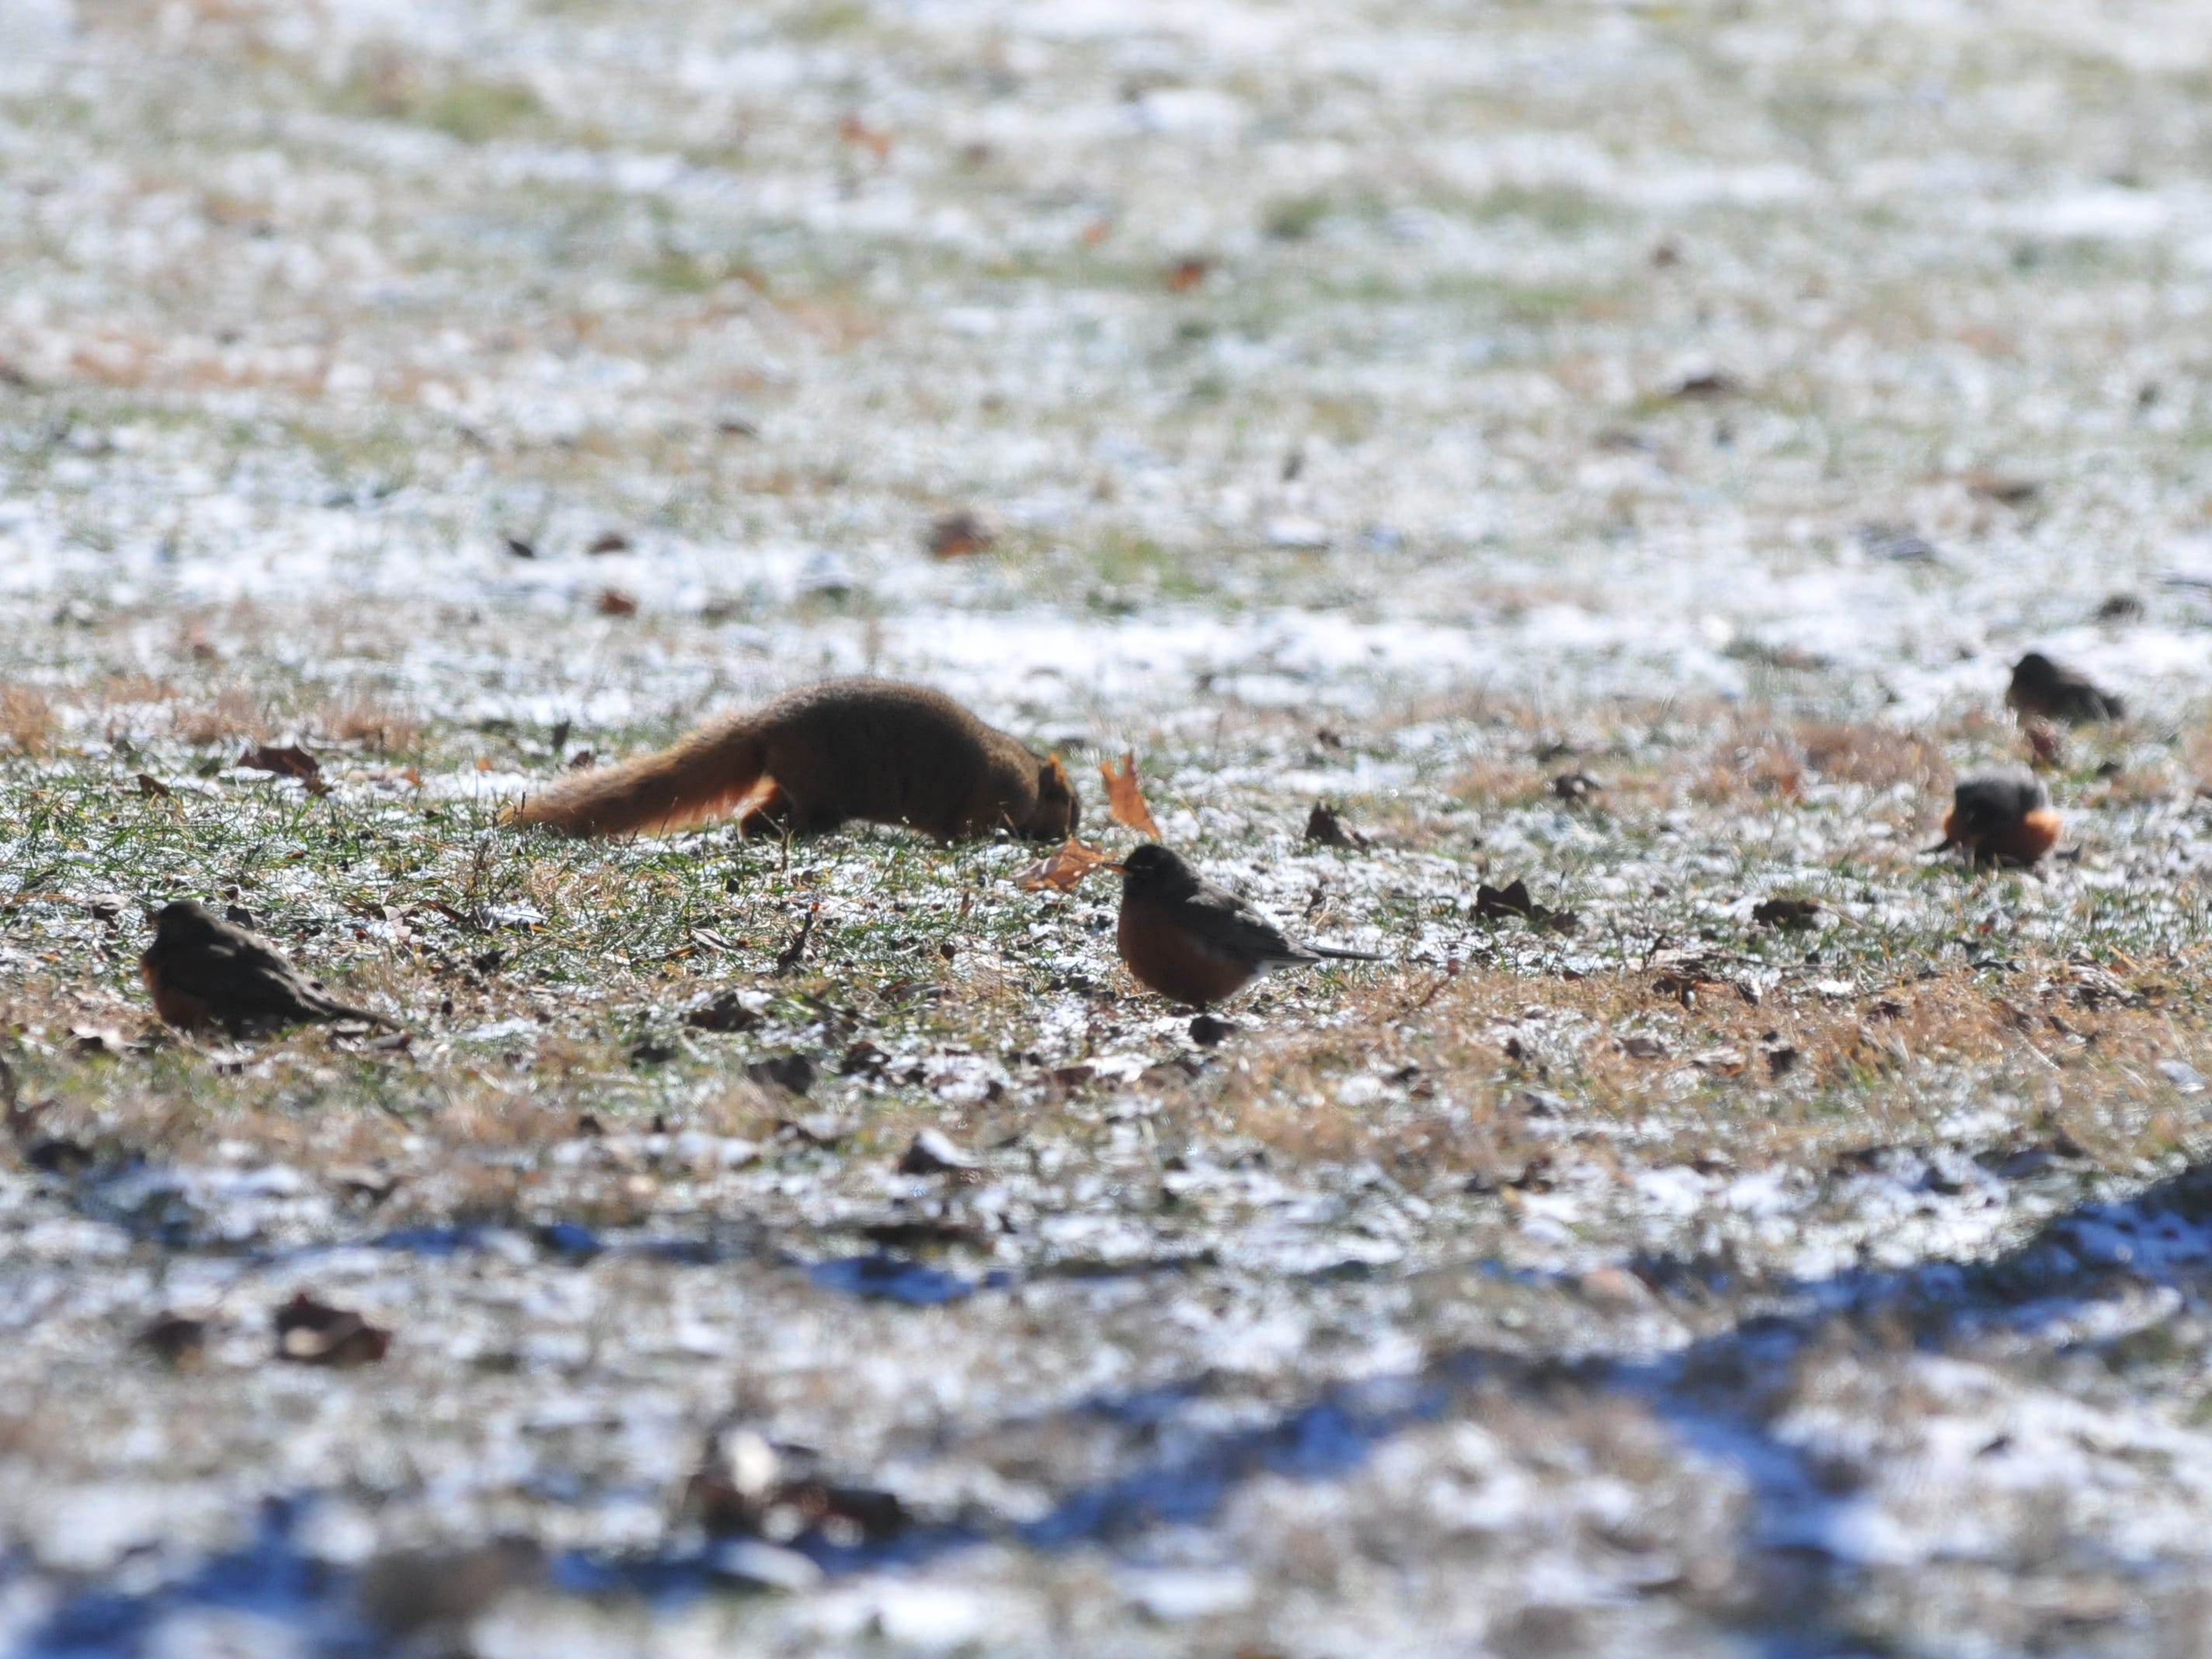 A squirrel searches for food among some birds Wednesday at Earlham College.